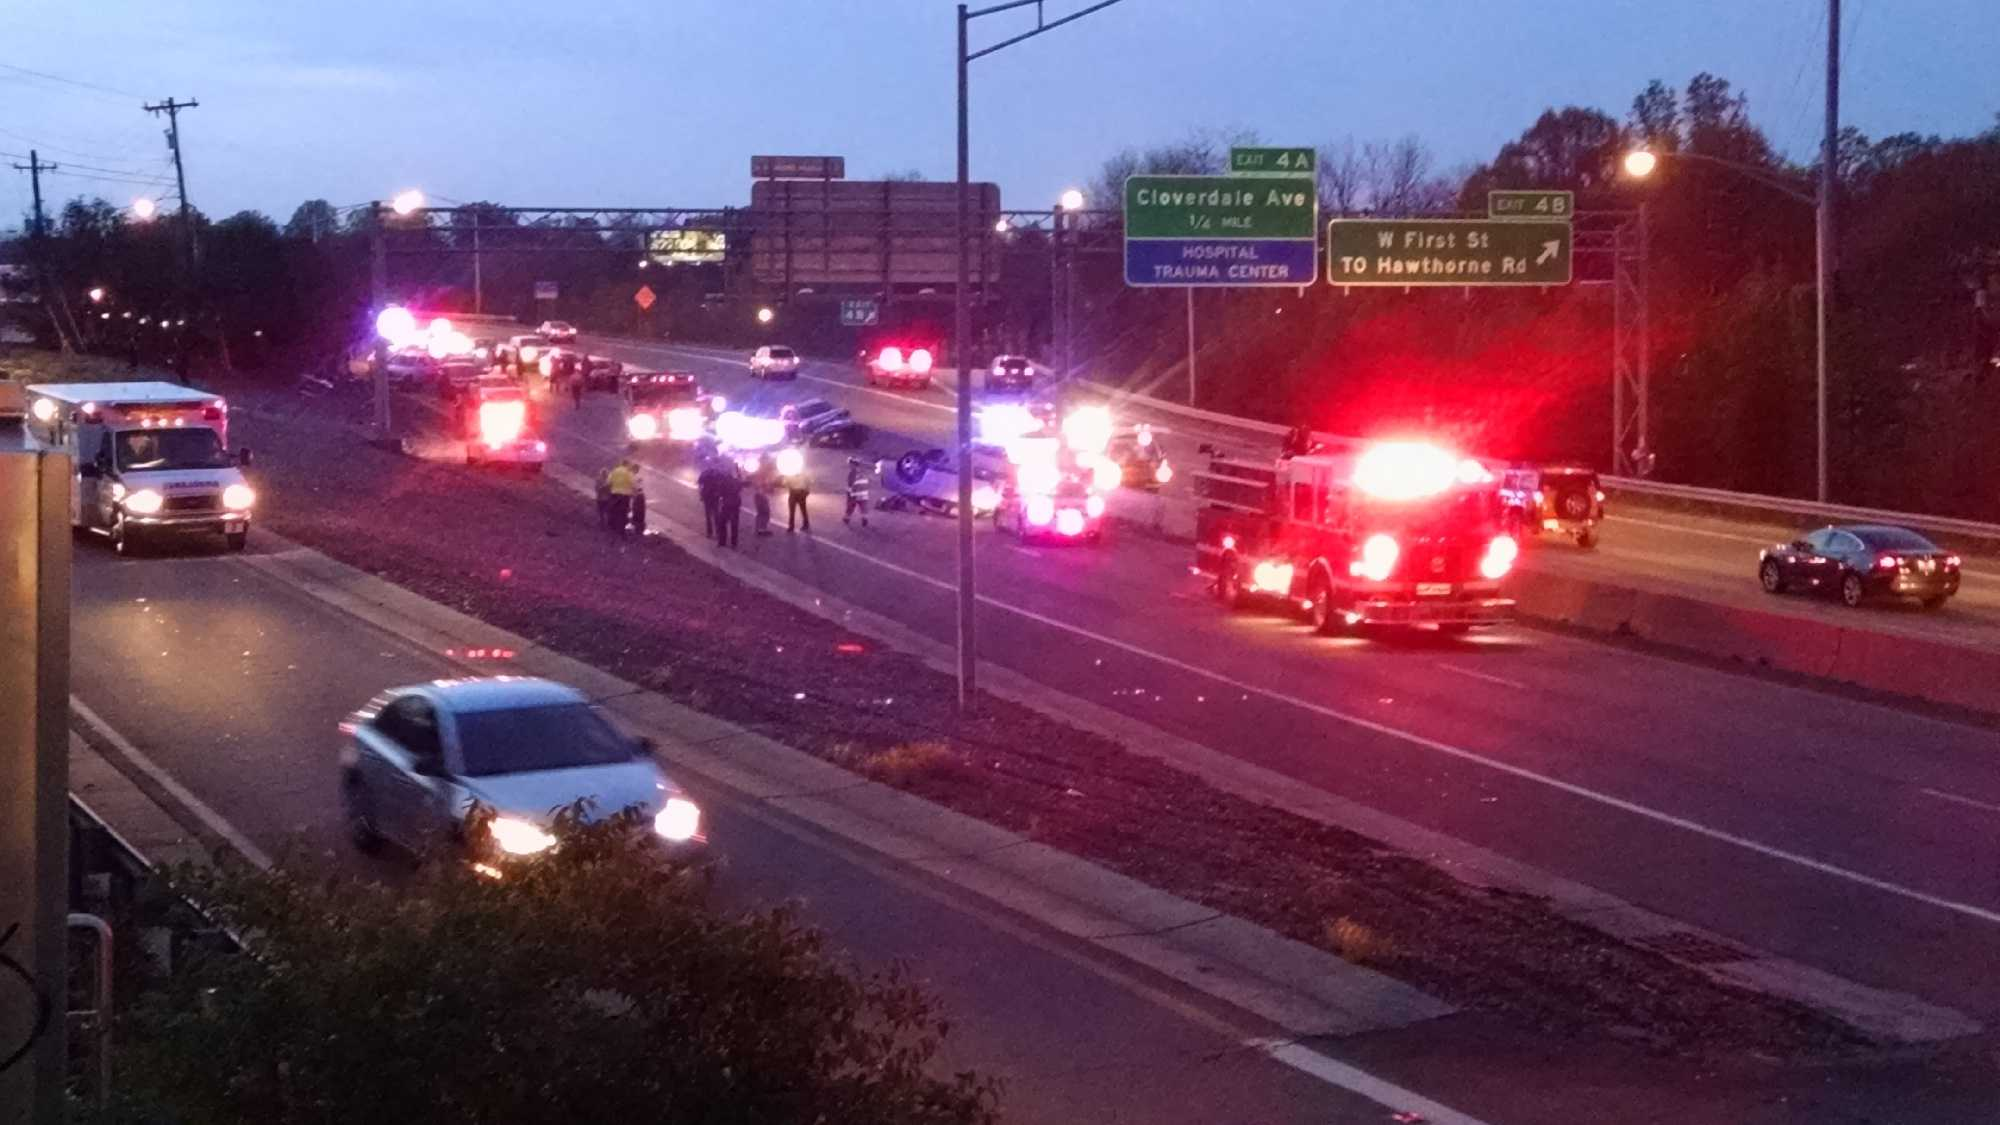 U.S. 421 South was closed between Stratford Road and Peters Creek Parkway on Wednesday evening as police investigated a crash.